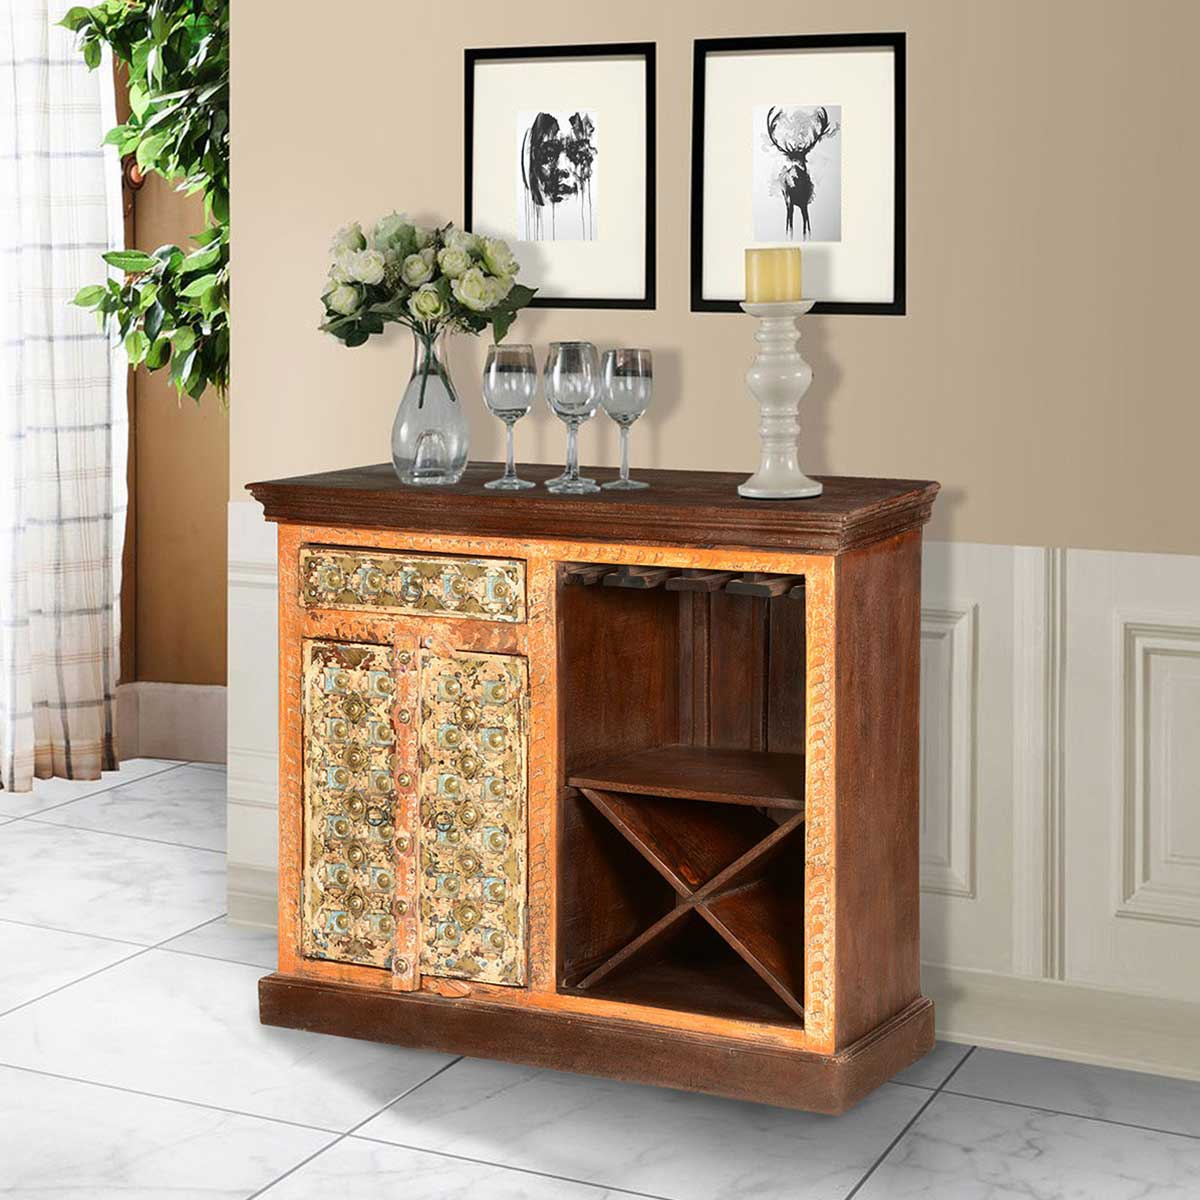 Golden Gothic Handcrafted Mango Wood Wine Rack Bar Cabinet